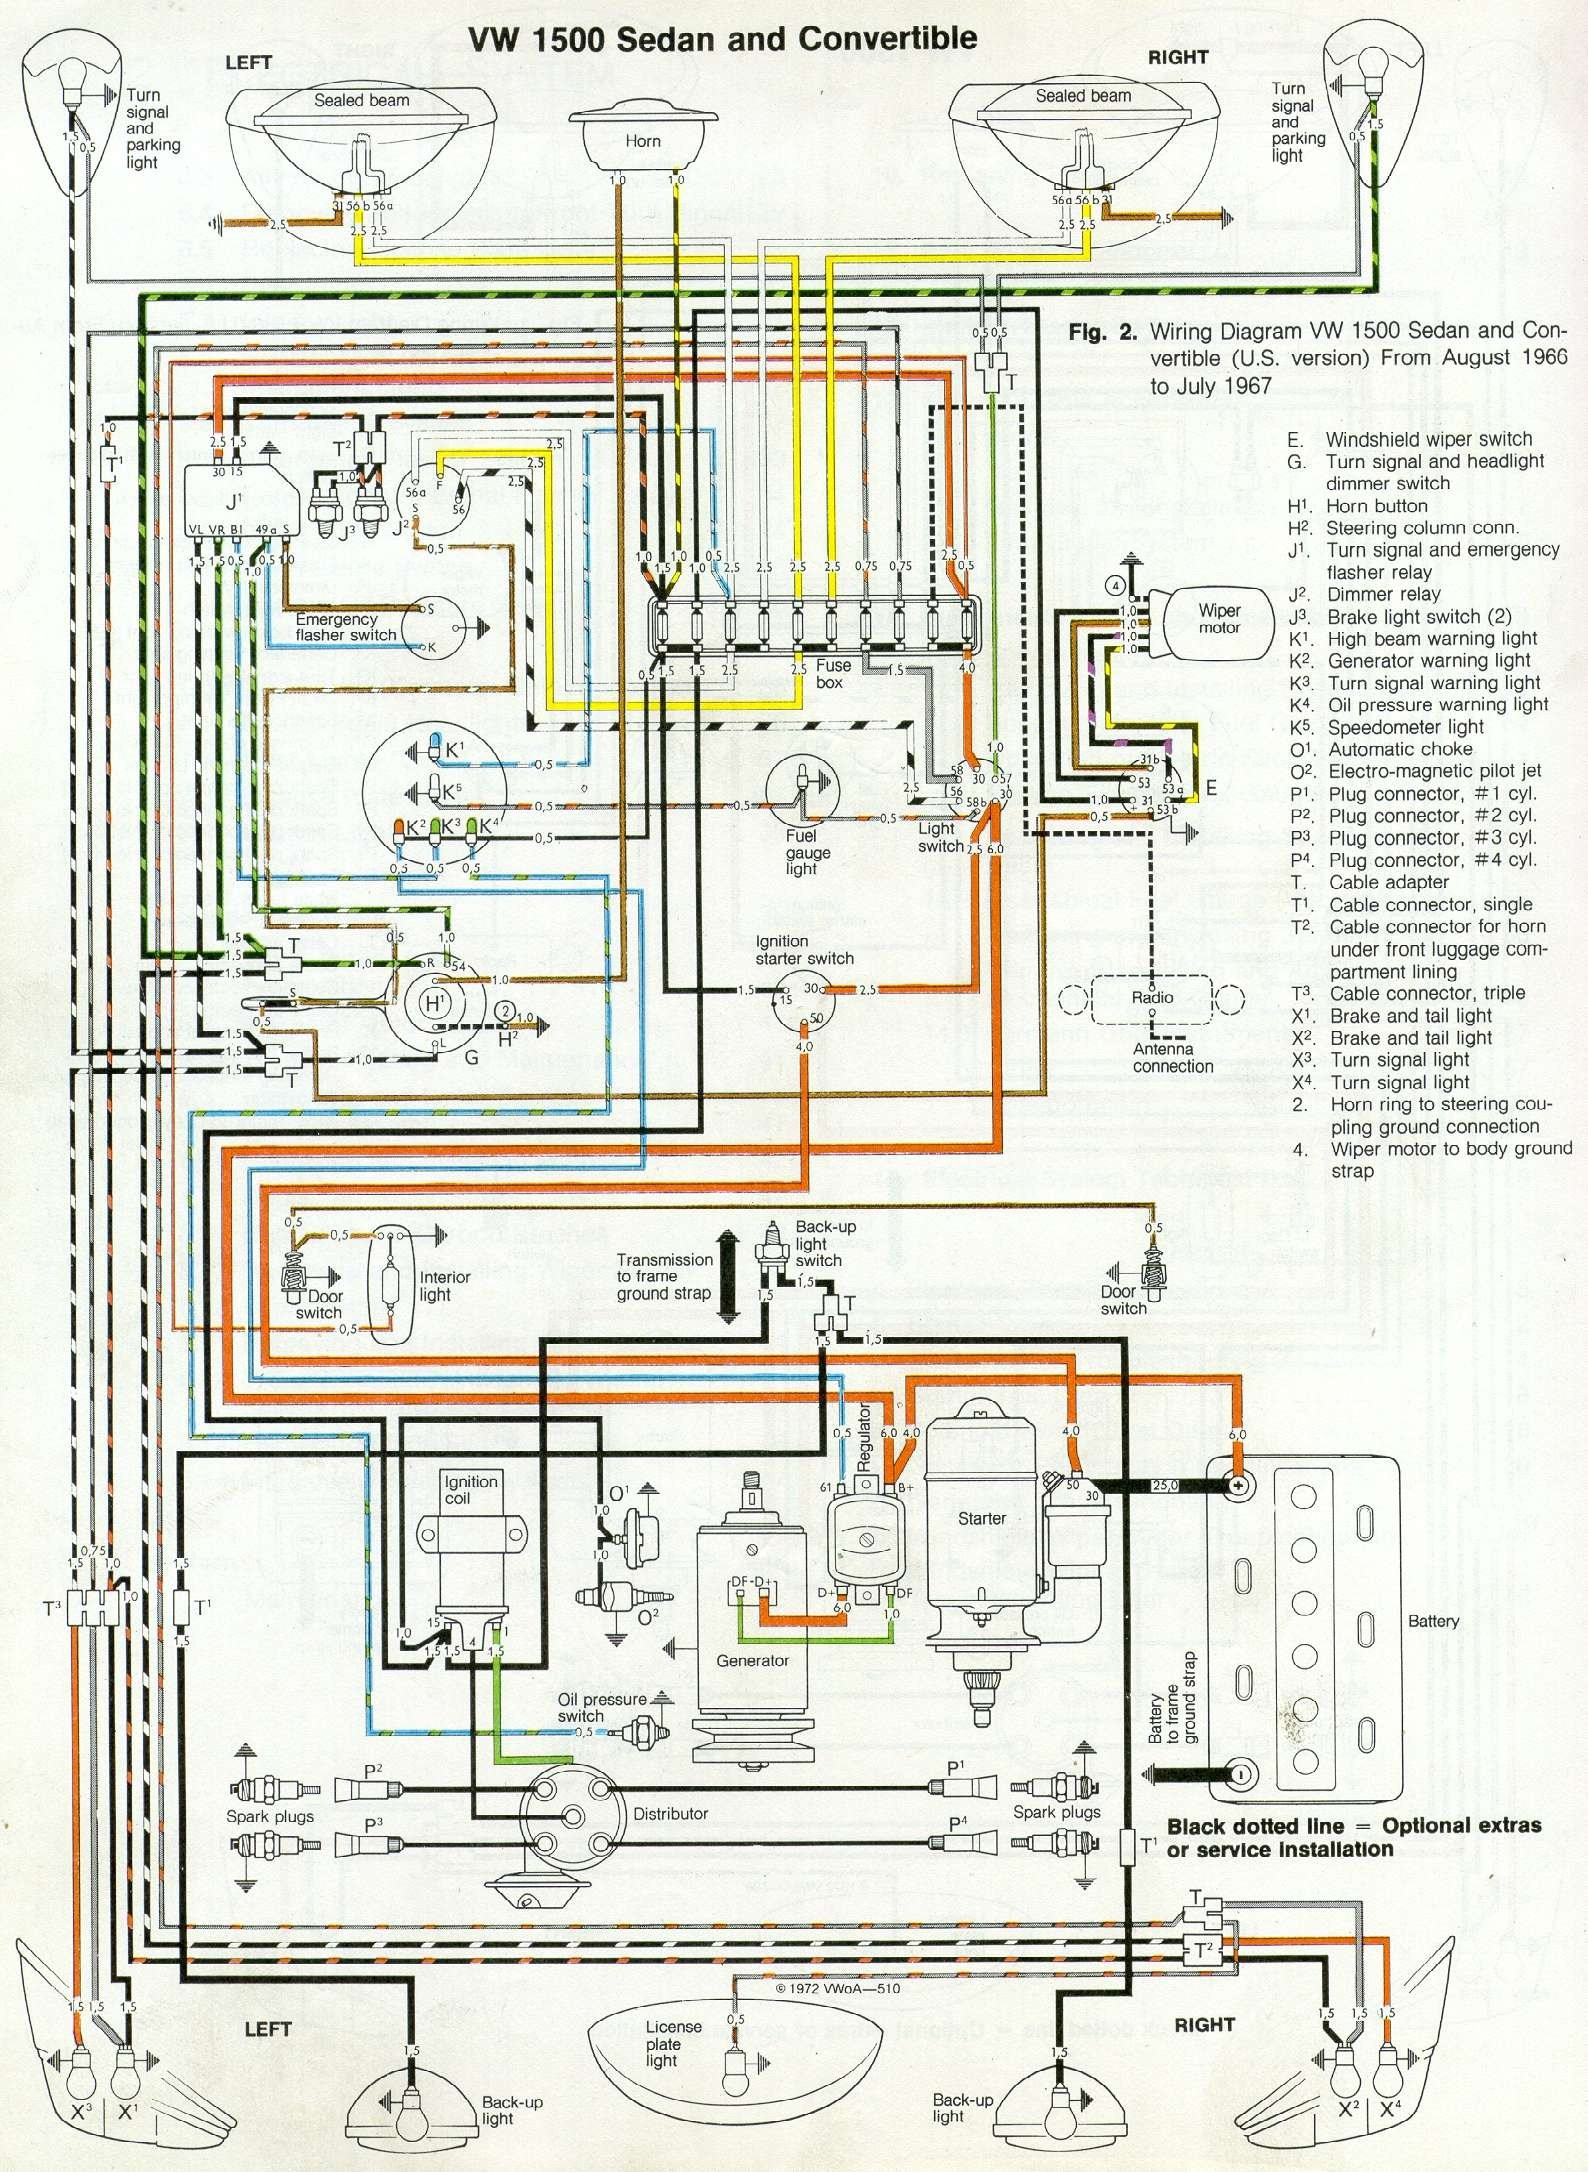 VW Beetle Wiring Digram 67 beetle wiring diagram u s version 1967 vw beetle Electrical Wiring Diagrams at gsmx.co